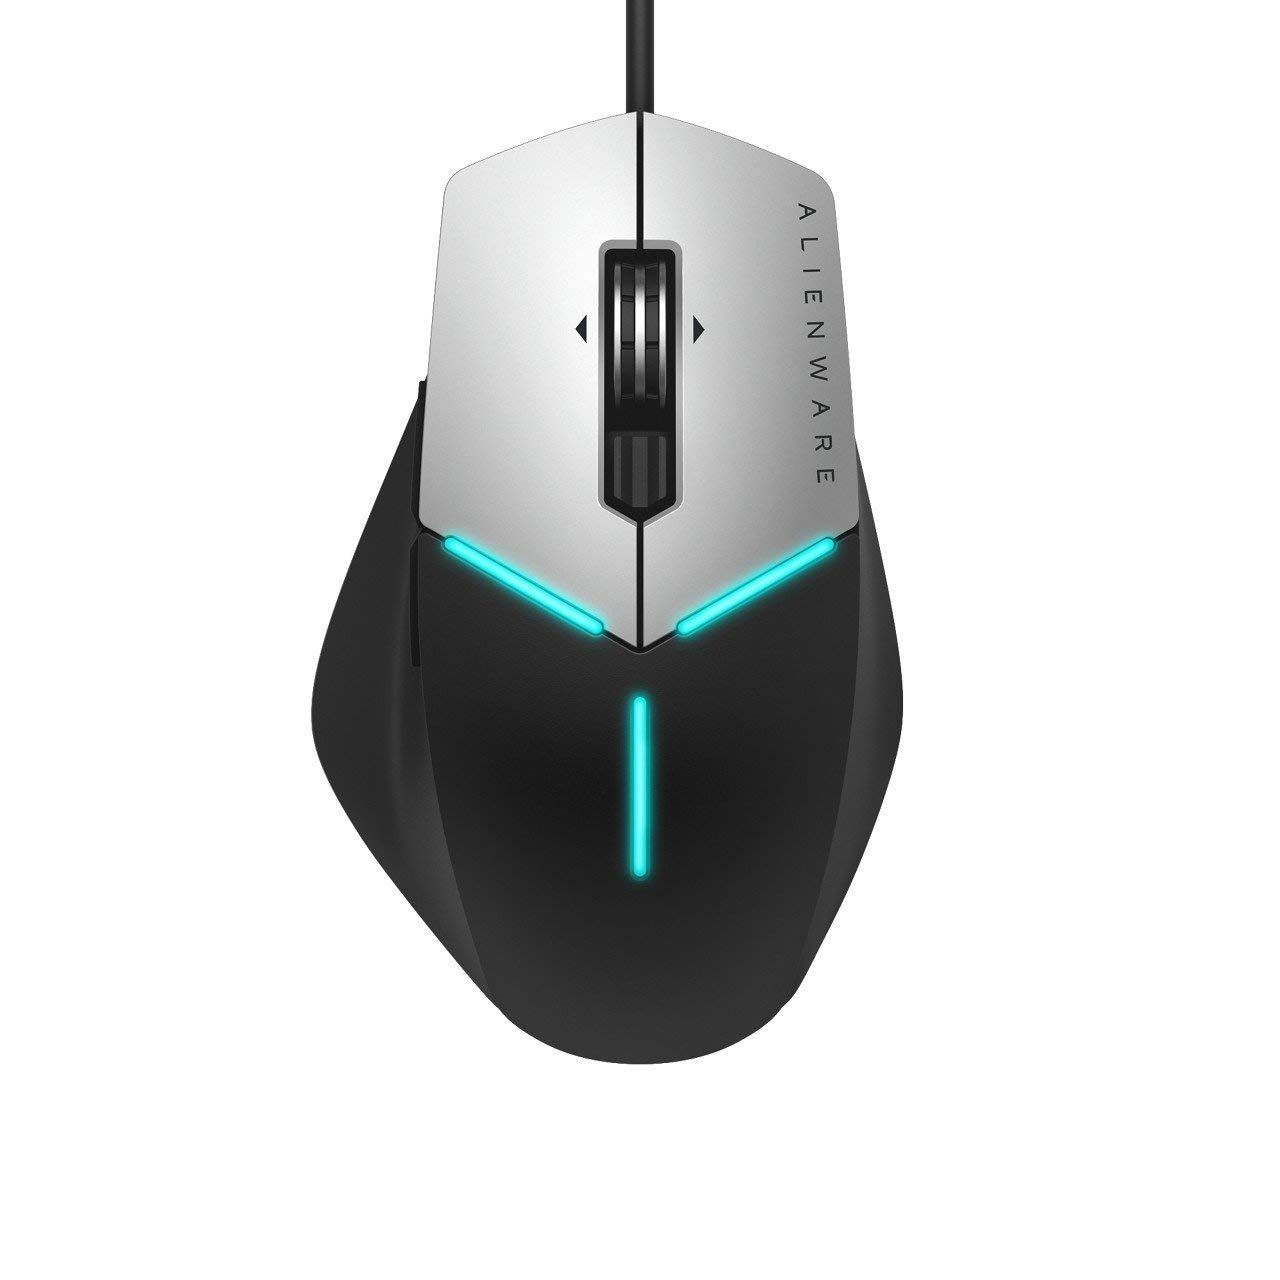 Price Inr 389900 Alienware Advanced Gaming Mouse Aw558 Dell Wireless Optical Wm126 Mice My Website